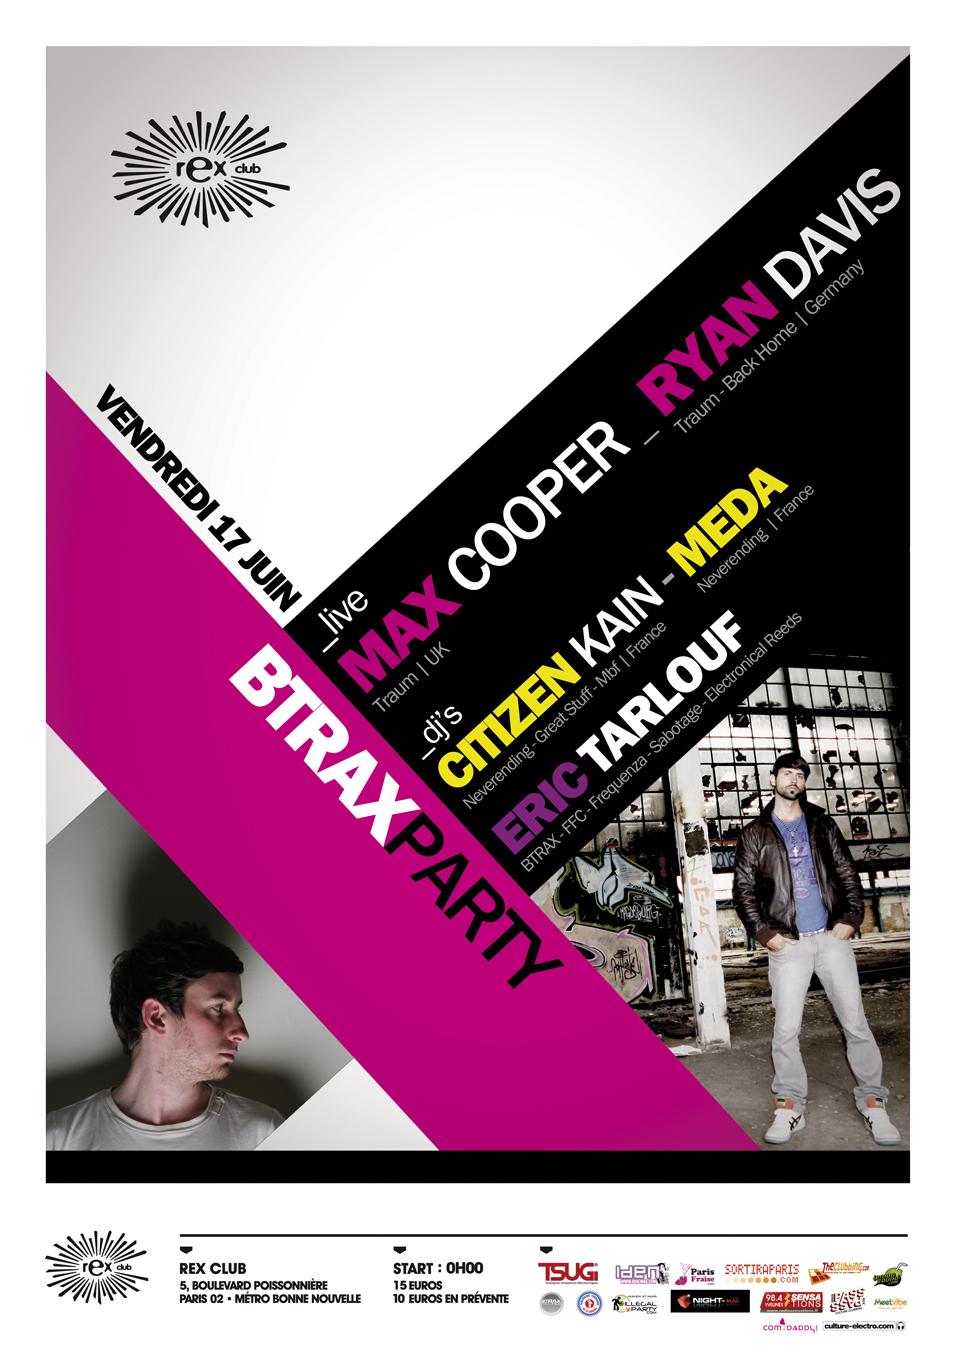 BTRAX party 17.06.11